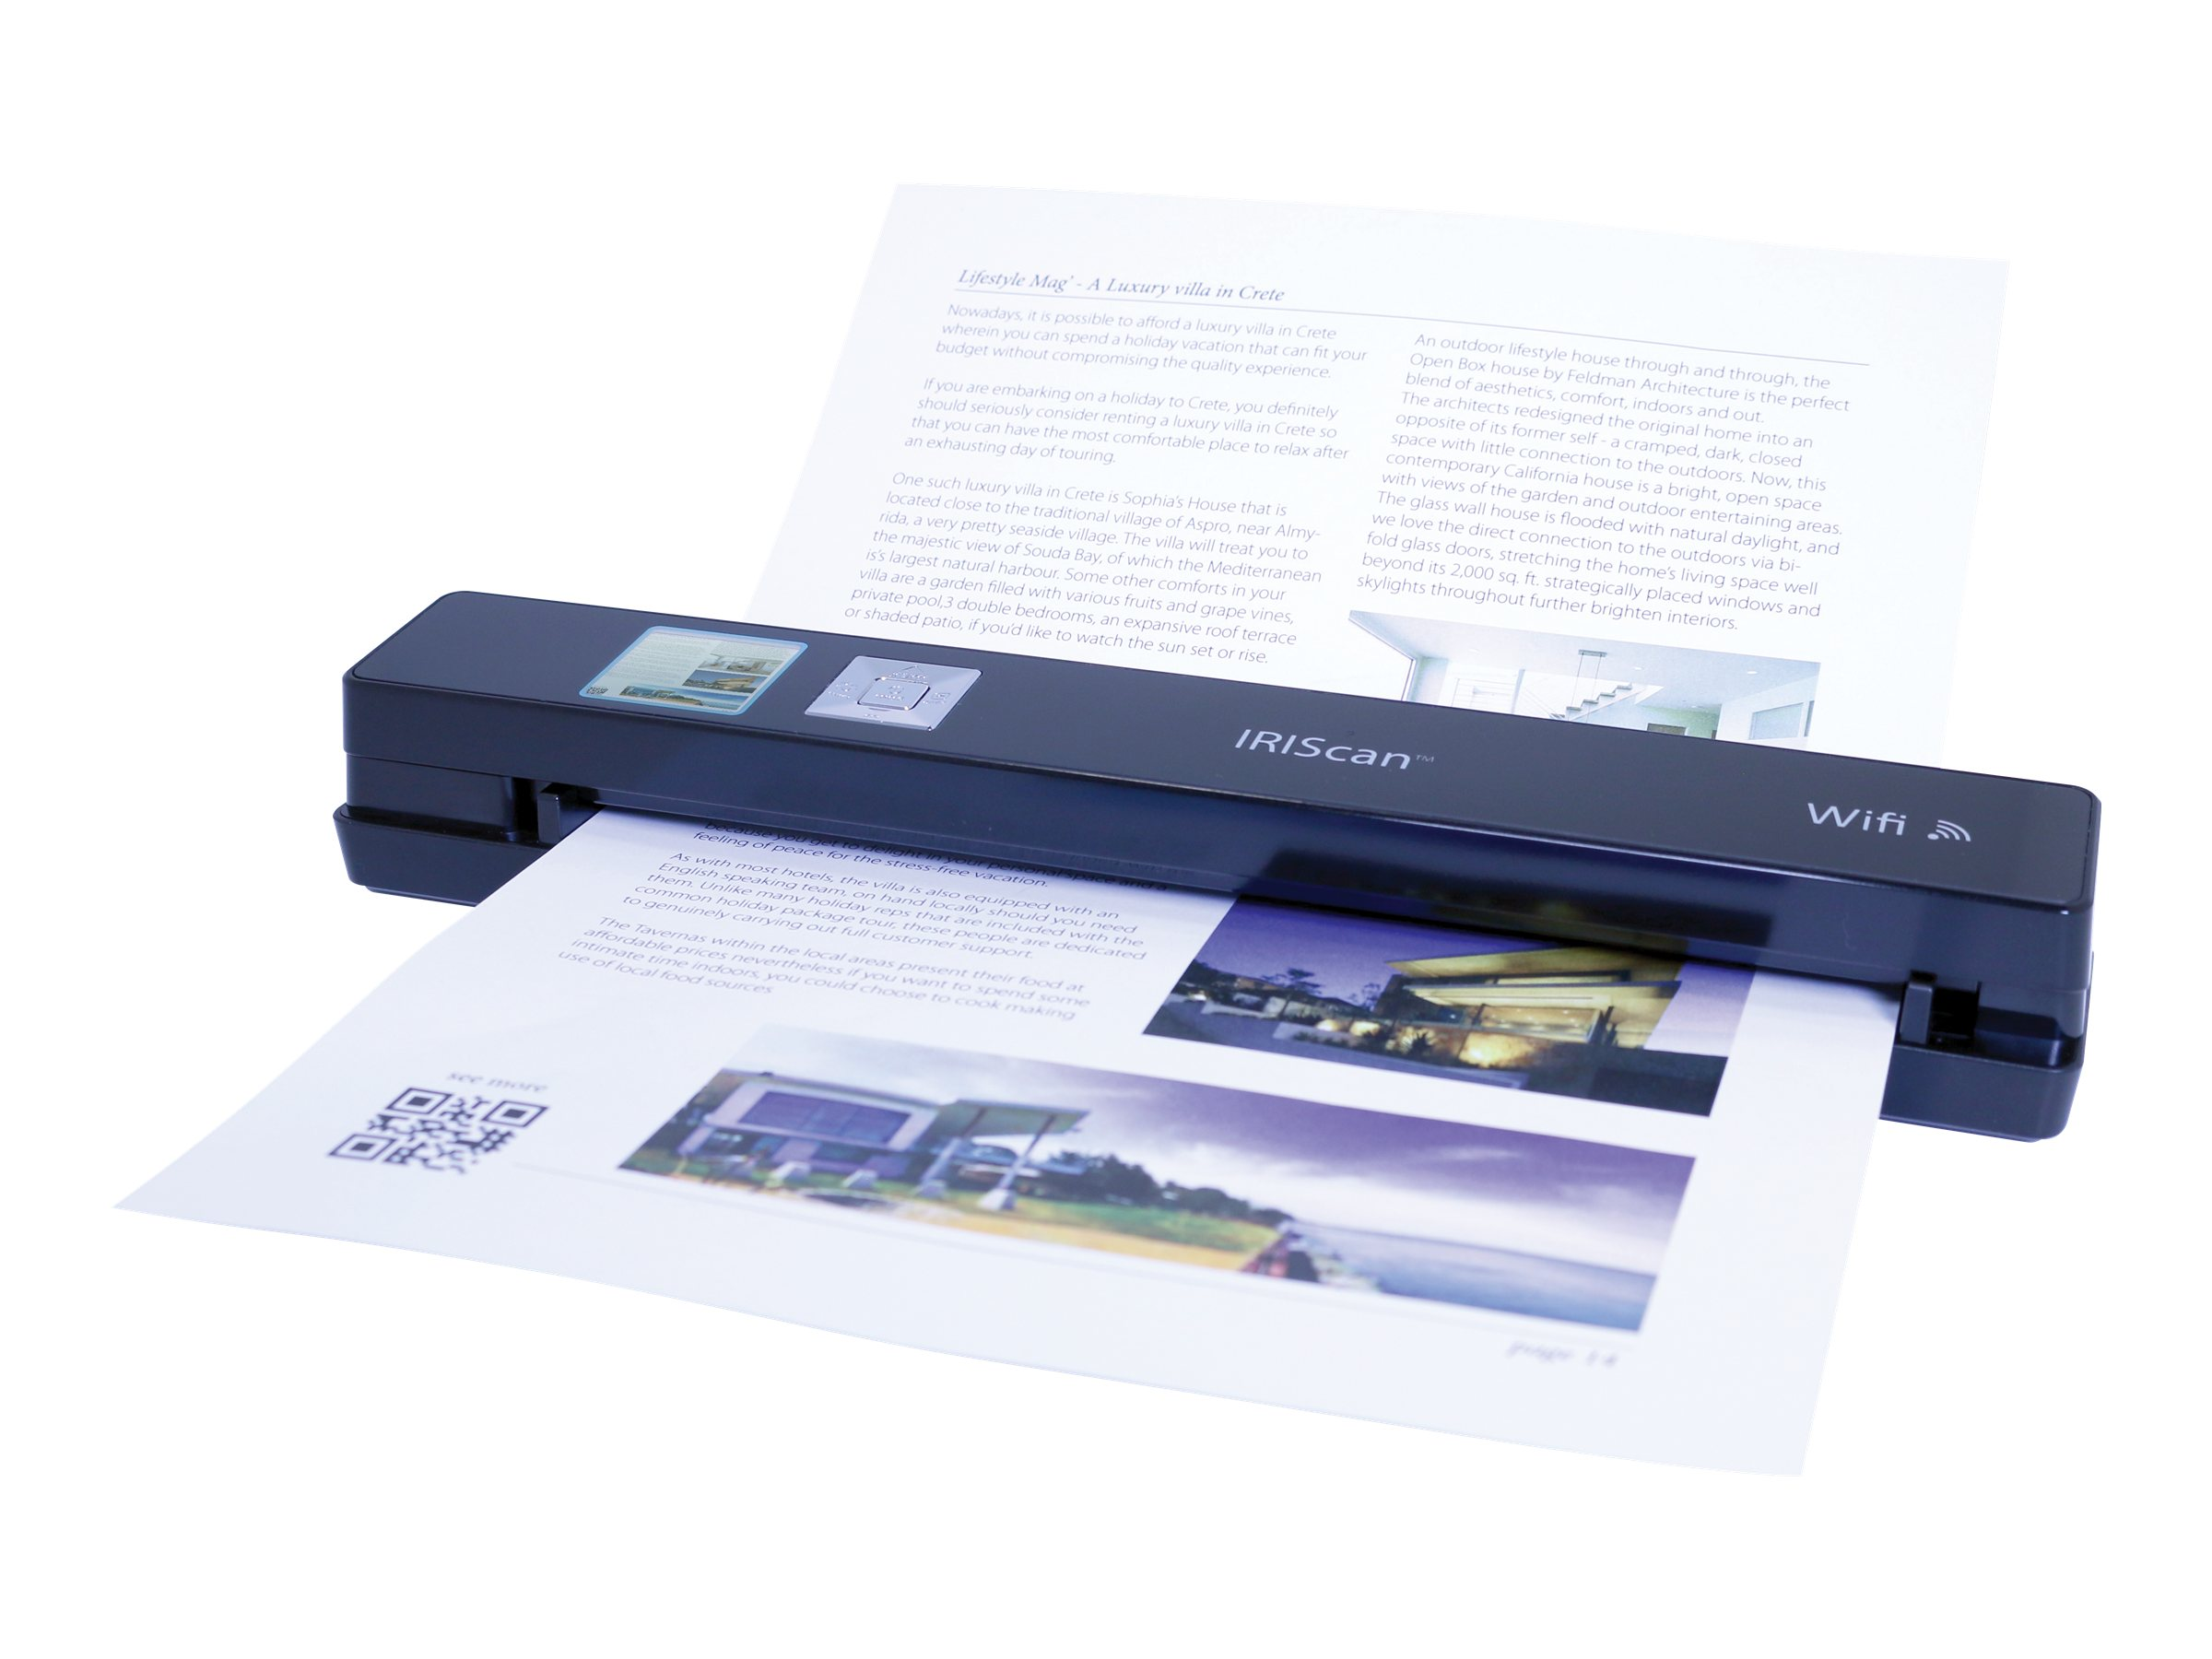 IRIS Iriscan Anywhere 3 WiFi Mobile Sheet-fed Scanner, 458129, 17661631, Scanners